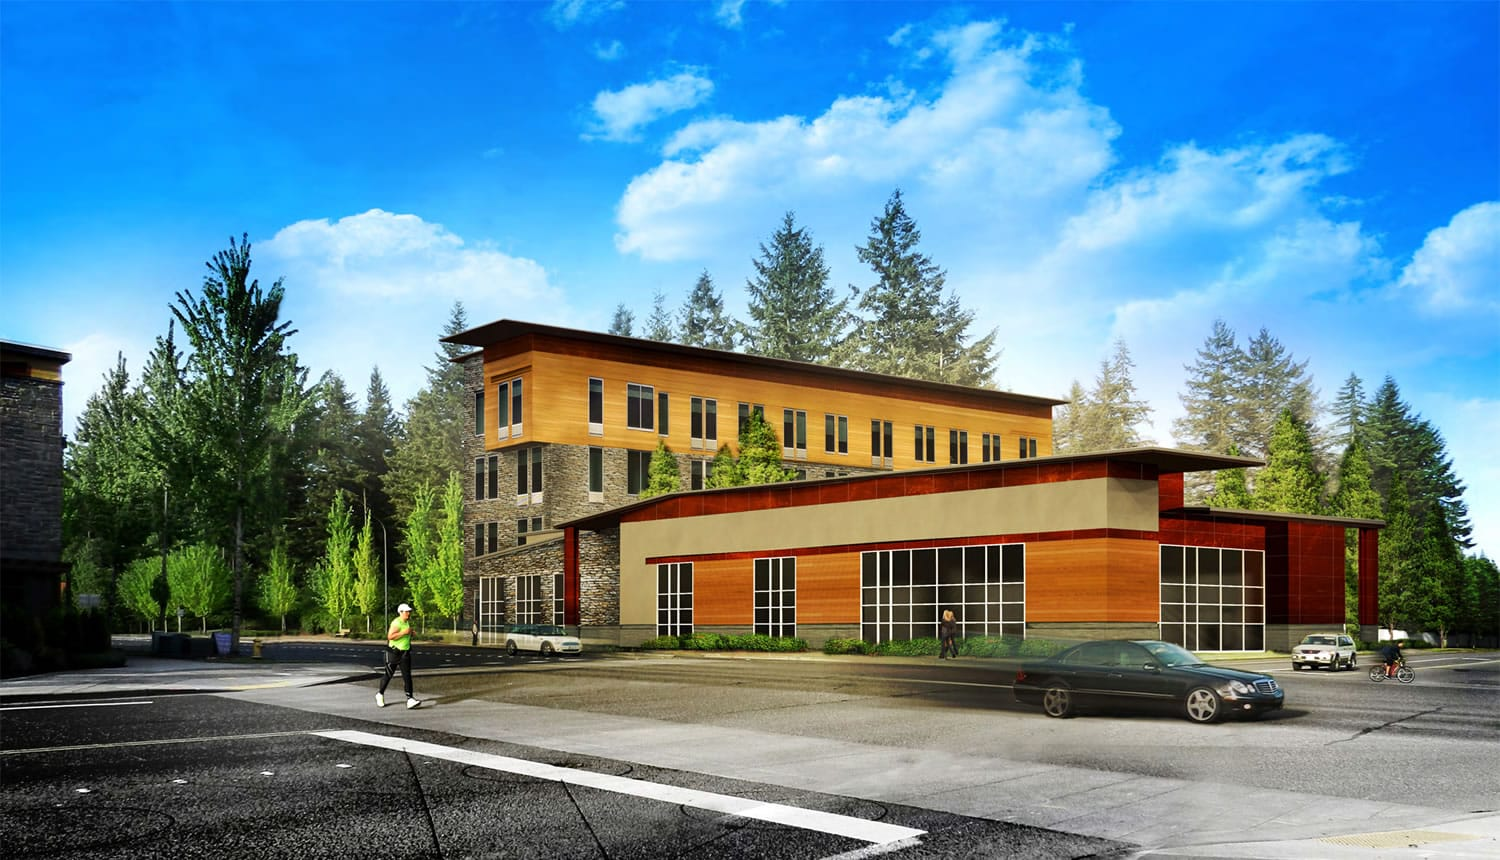 Construction is expected to wrap up this summer on a new Candlewood Suites hotel on 192nd Avenue in east Vancouver. Over the next two years, hundreds of new hotel rooms will be added to Clark County.